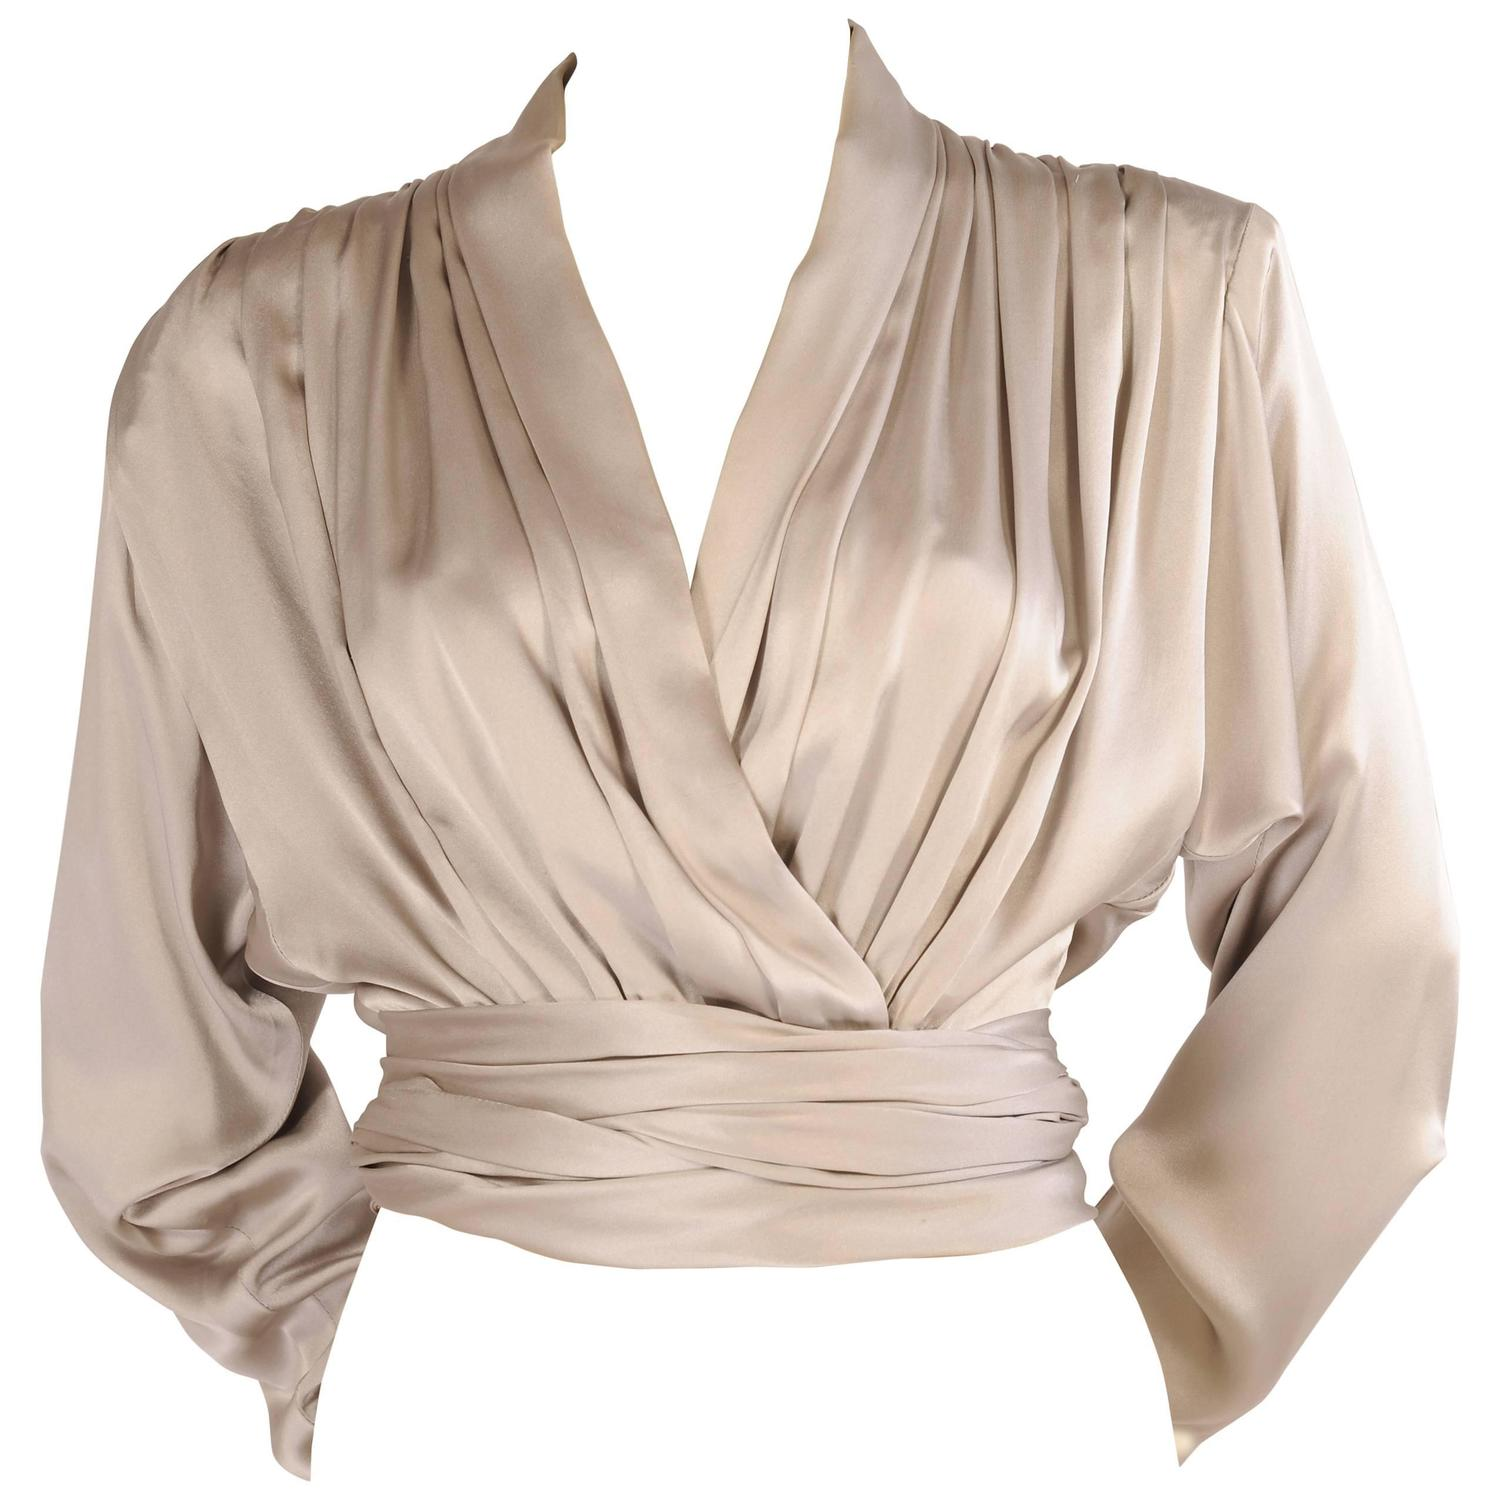 739301f68aa5c1 Yves Saint Laurent Haute Couture Smoke Grey Silk Charmeuse Wrap Blouse For  Sale at 1stdibs